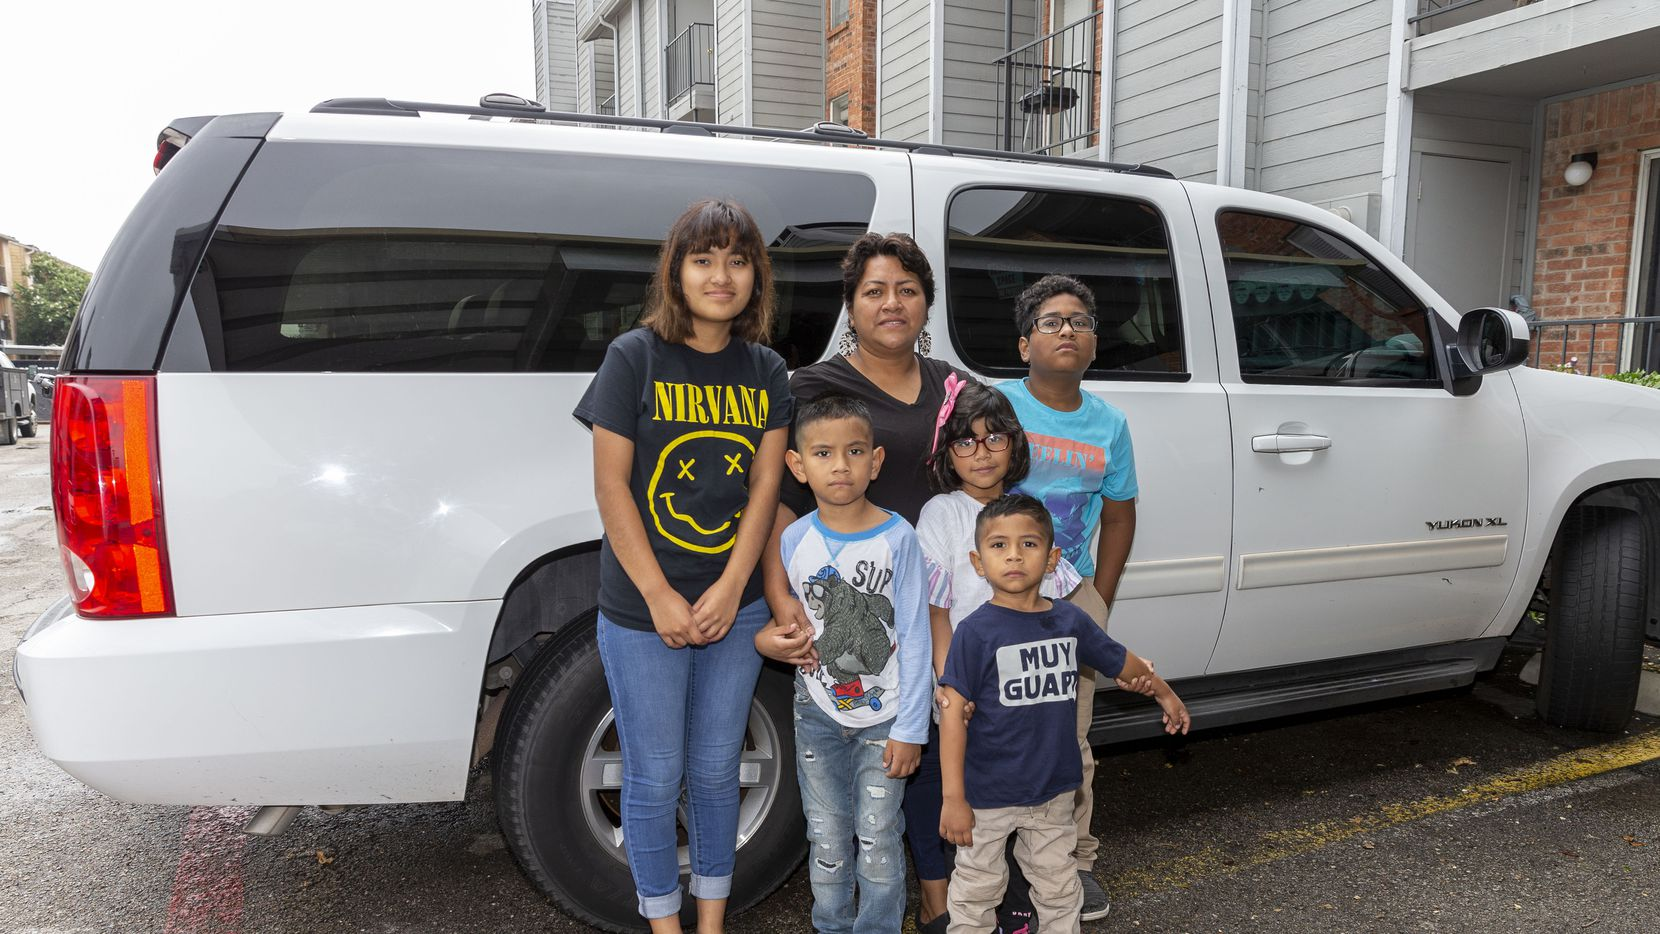 Lily de la Cruz with five of her children and the vehicle they lived in for part of 2020.